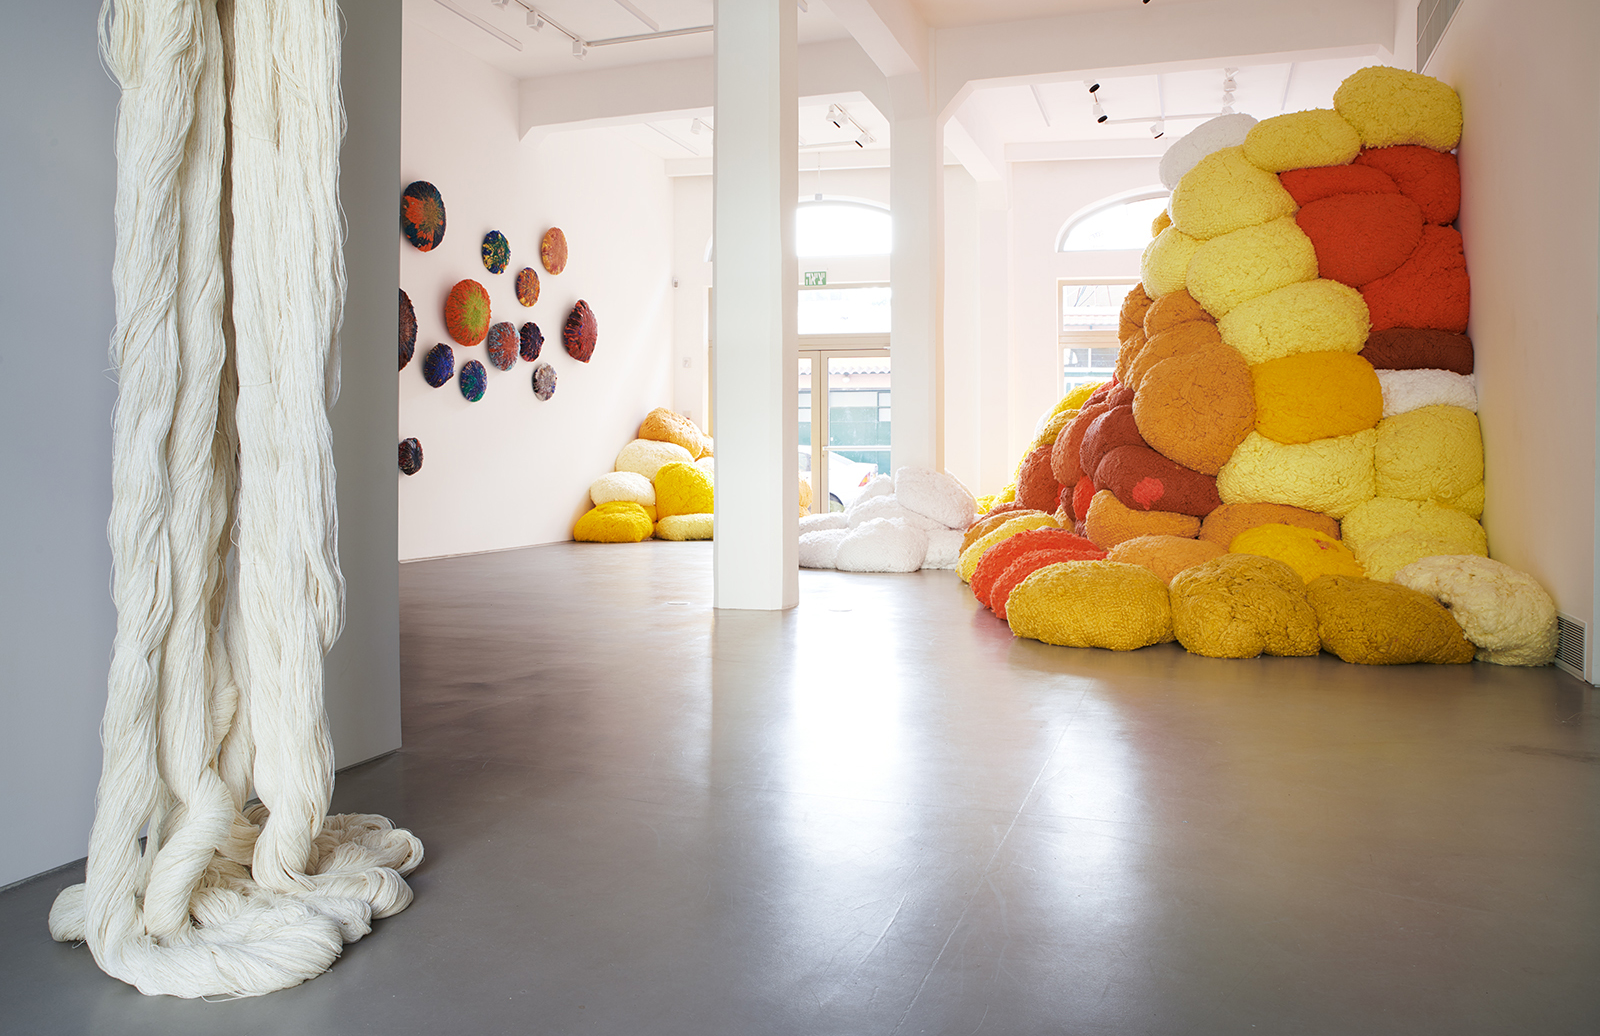 Installation view, Sheila Hicks,Migdalor, courtesy of Magasin III Jaffa. Photography: Noam Preisman